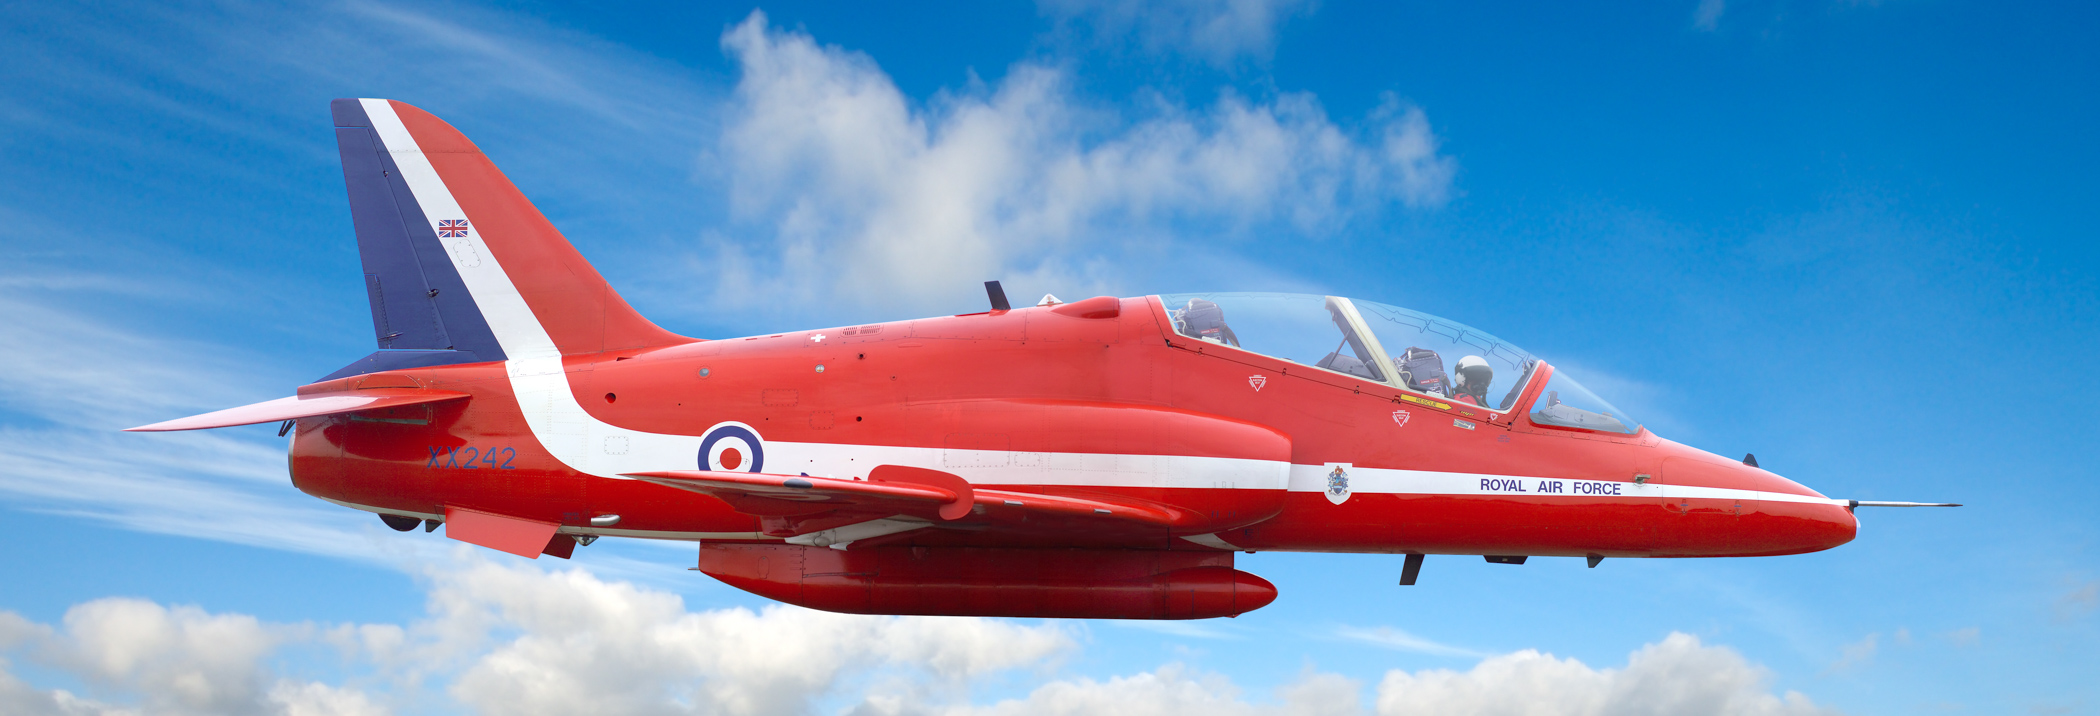 Red Arrows Hawk jet